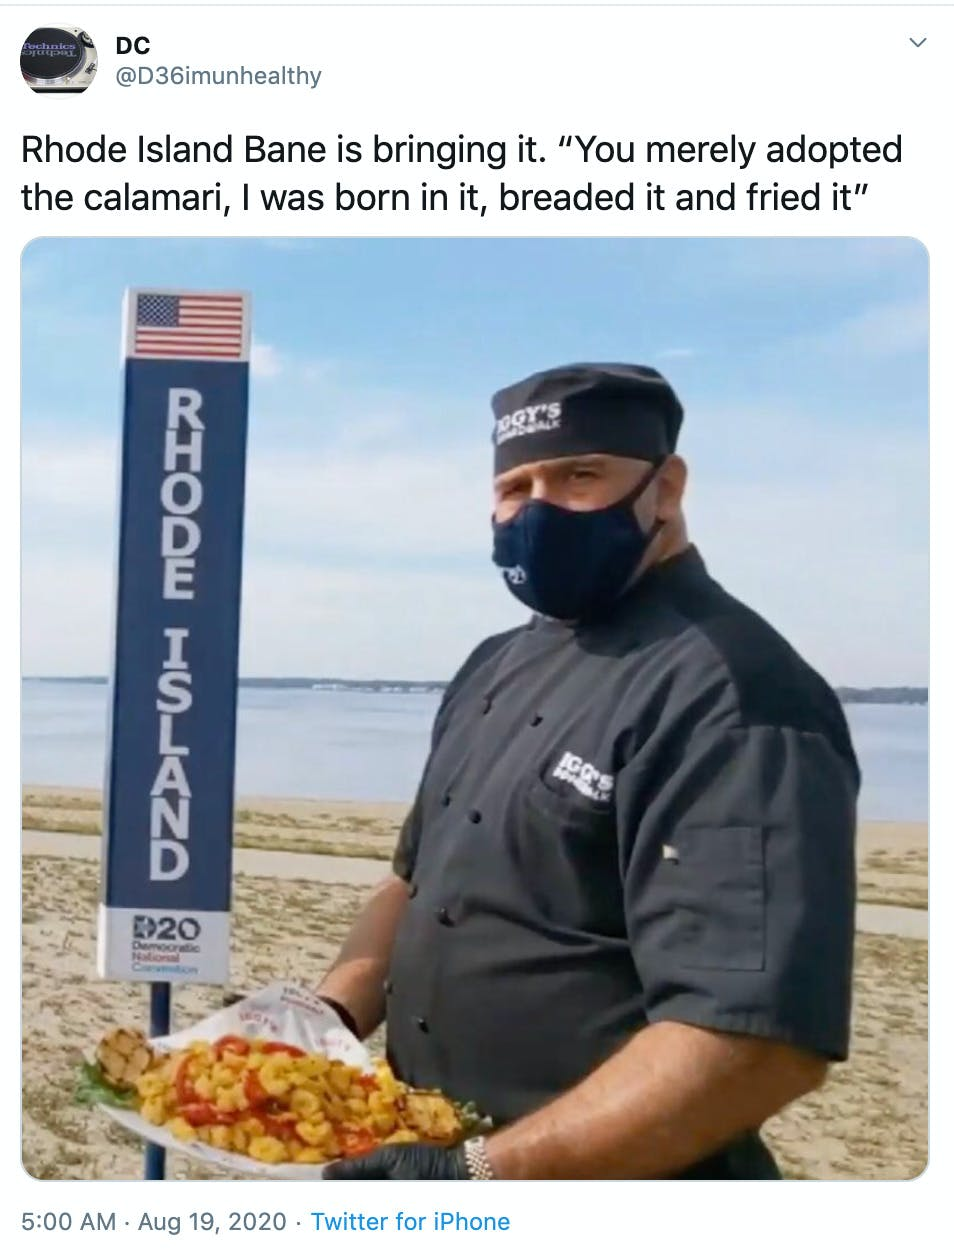 """""""Rhode Island Bane is bringing it. """"You merely adopted the calamari, I was born in it, breaded it and fried it"""""""" close up of the masked chef"""